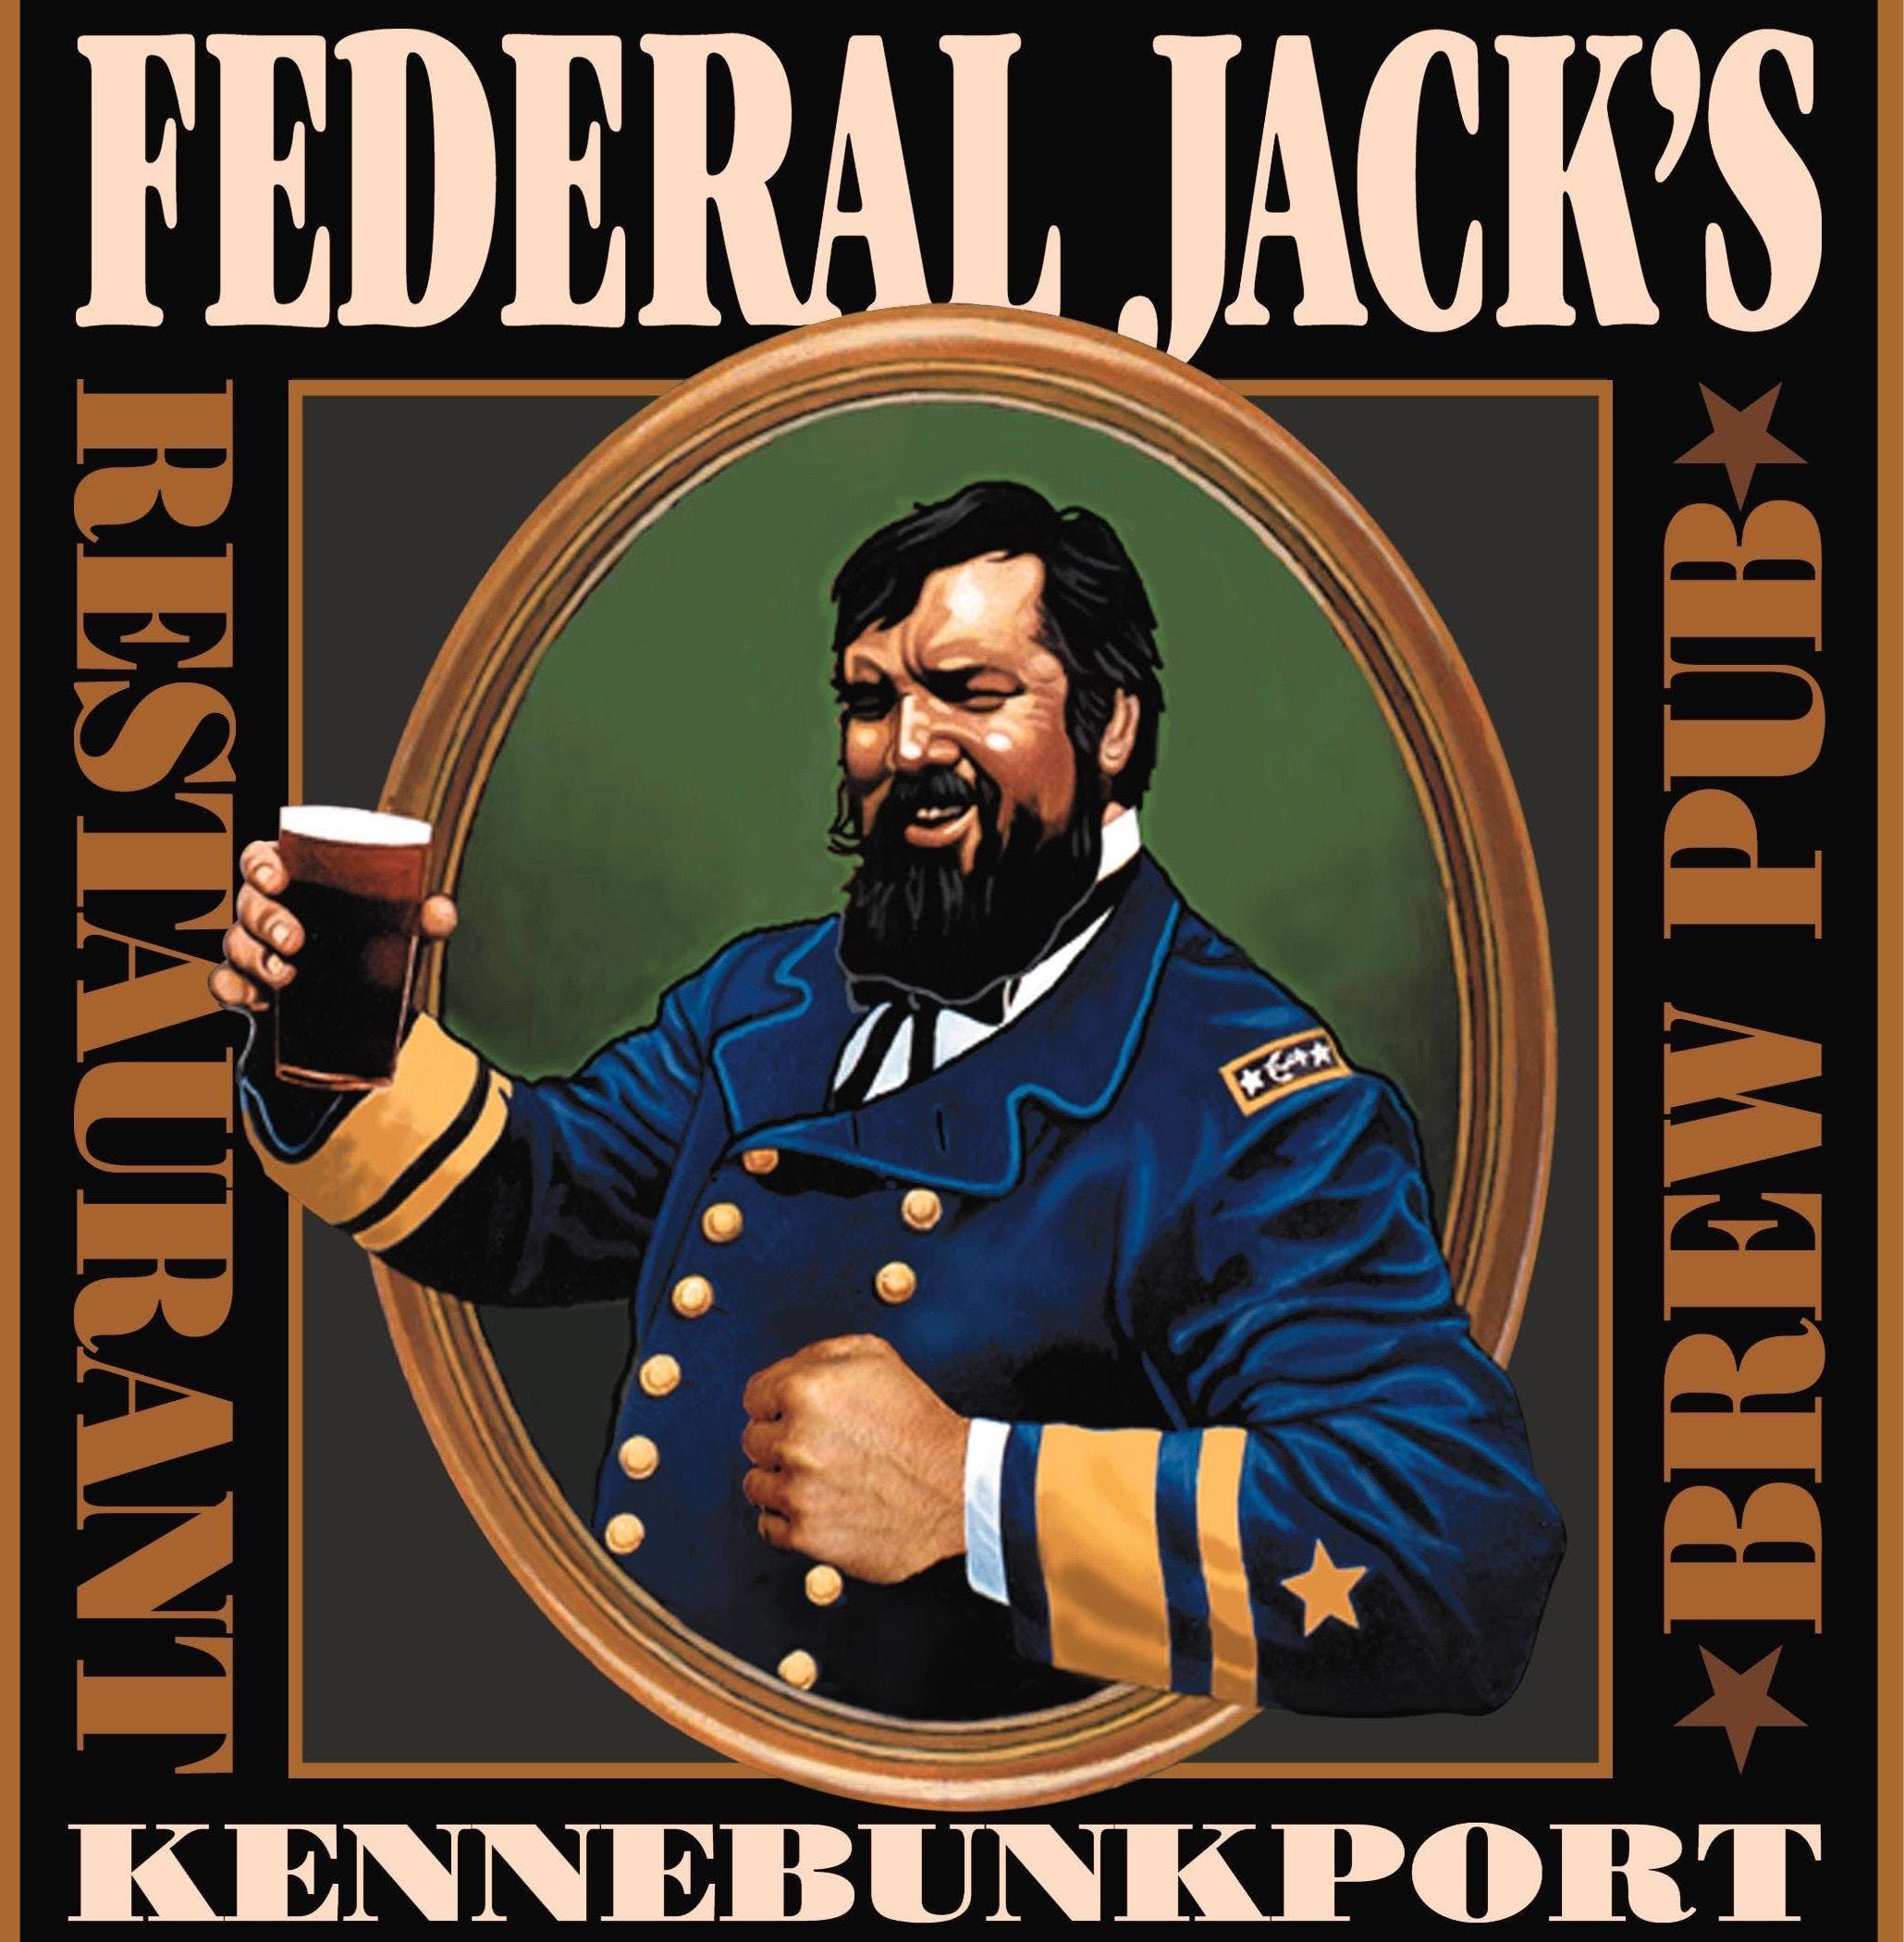 Federal Jack's Brewpub/Kennebunkport Brewing Company